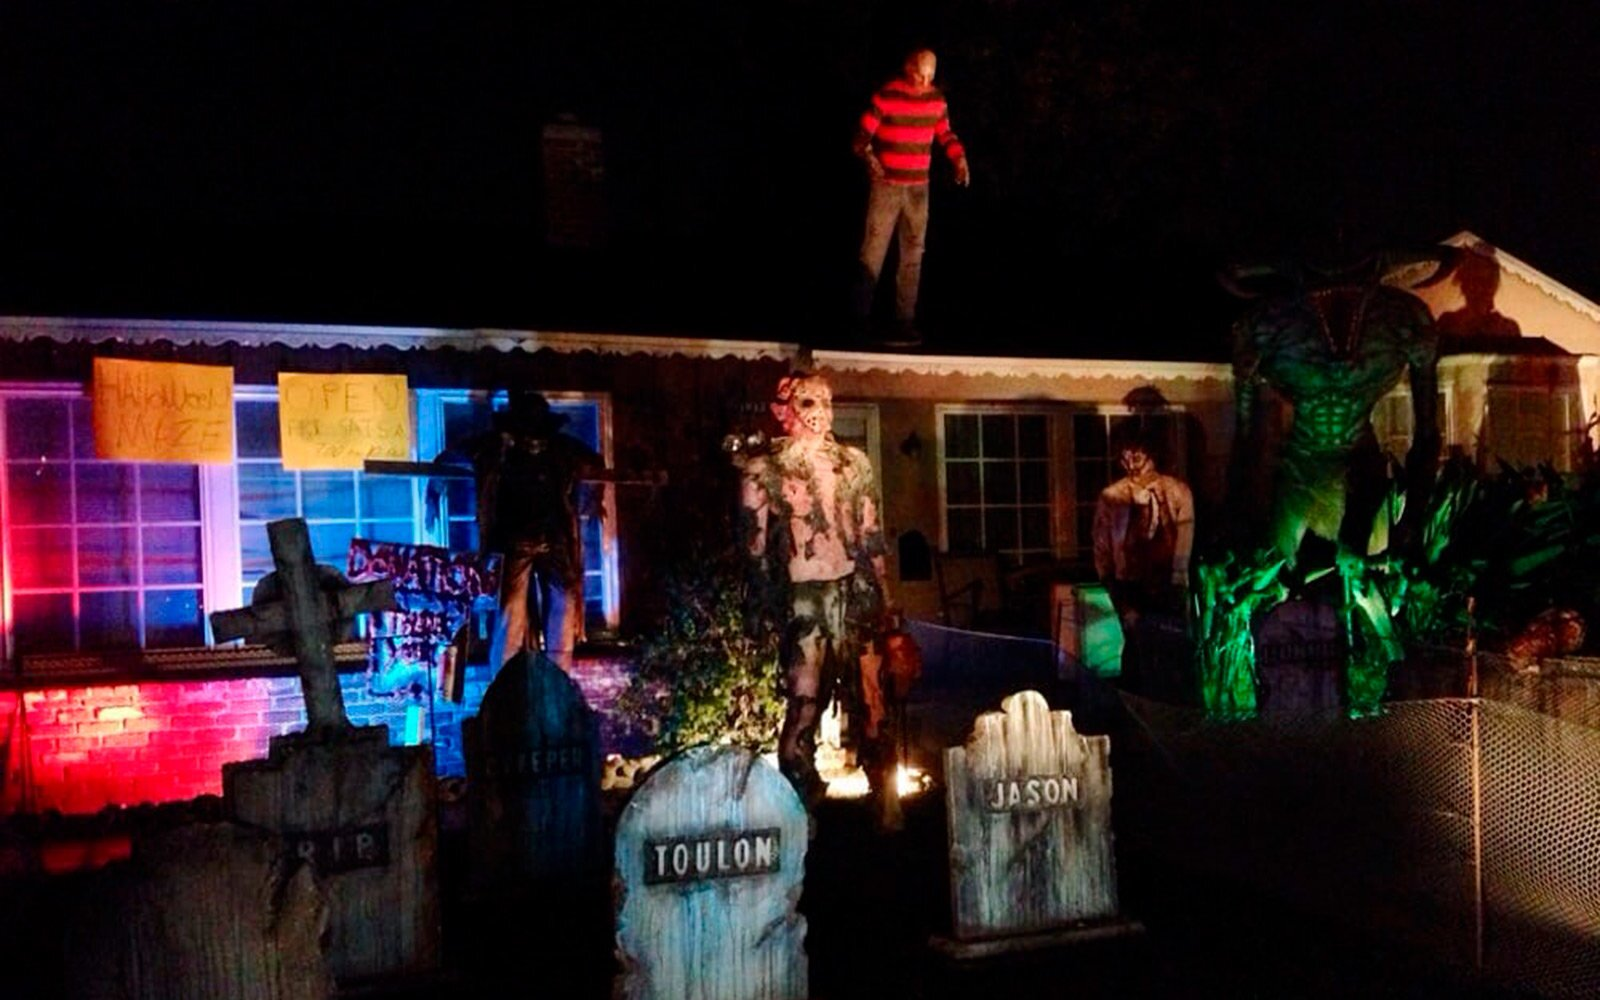 The 25 Scariest Haunted Houses in the U.S. | Travel + Leisure Simple Floor Plans Haunted House on red floor plans, warehouse floor plans, western floor plans, spooky house plans, haunted mansion ballroom ghosts, resident evil floor plans, haunted mansion room stairs, haunted mansion blueprints, haunted asylum floor plan, jail floor plans, soccer floor plans, haunted mansion phantom manor, ship floor plans, creepy old house plans,